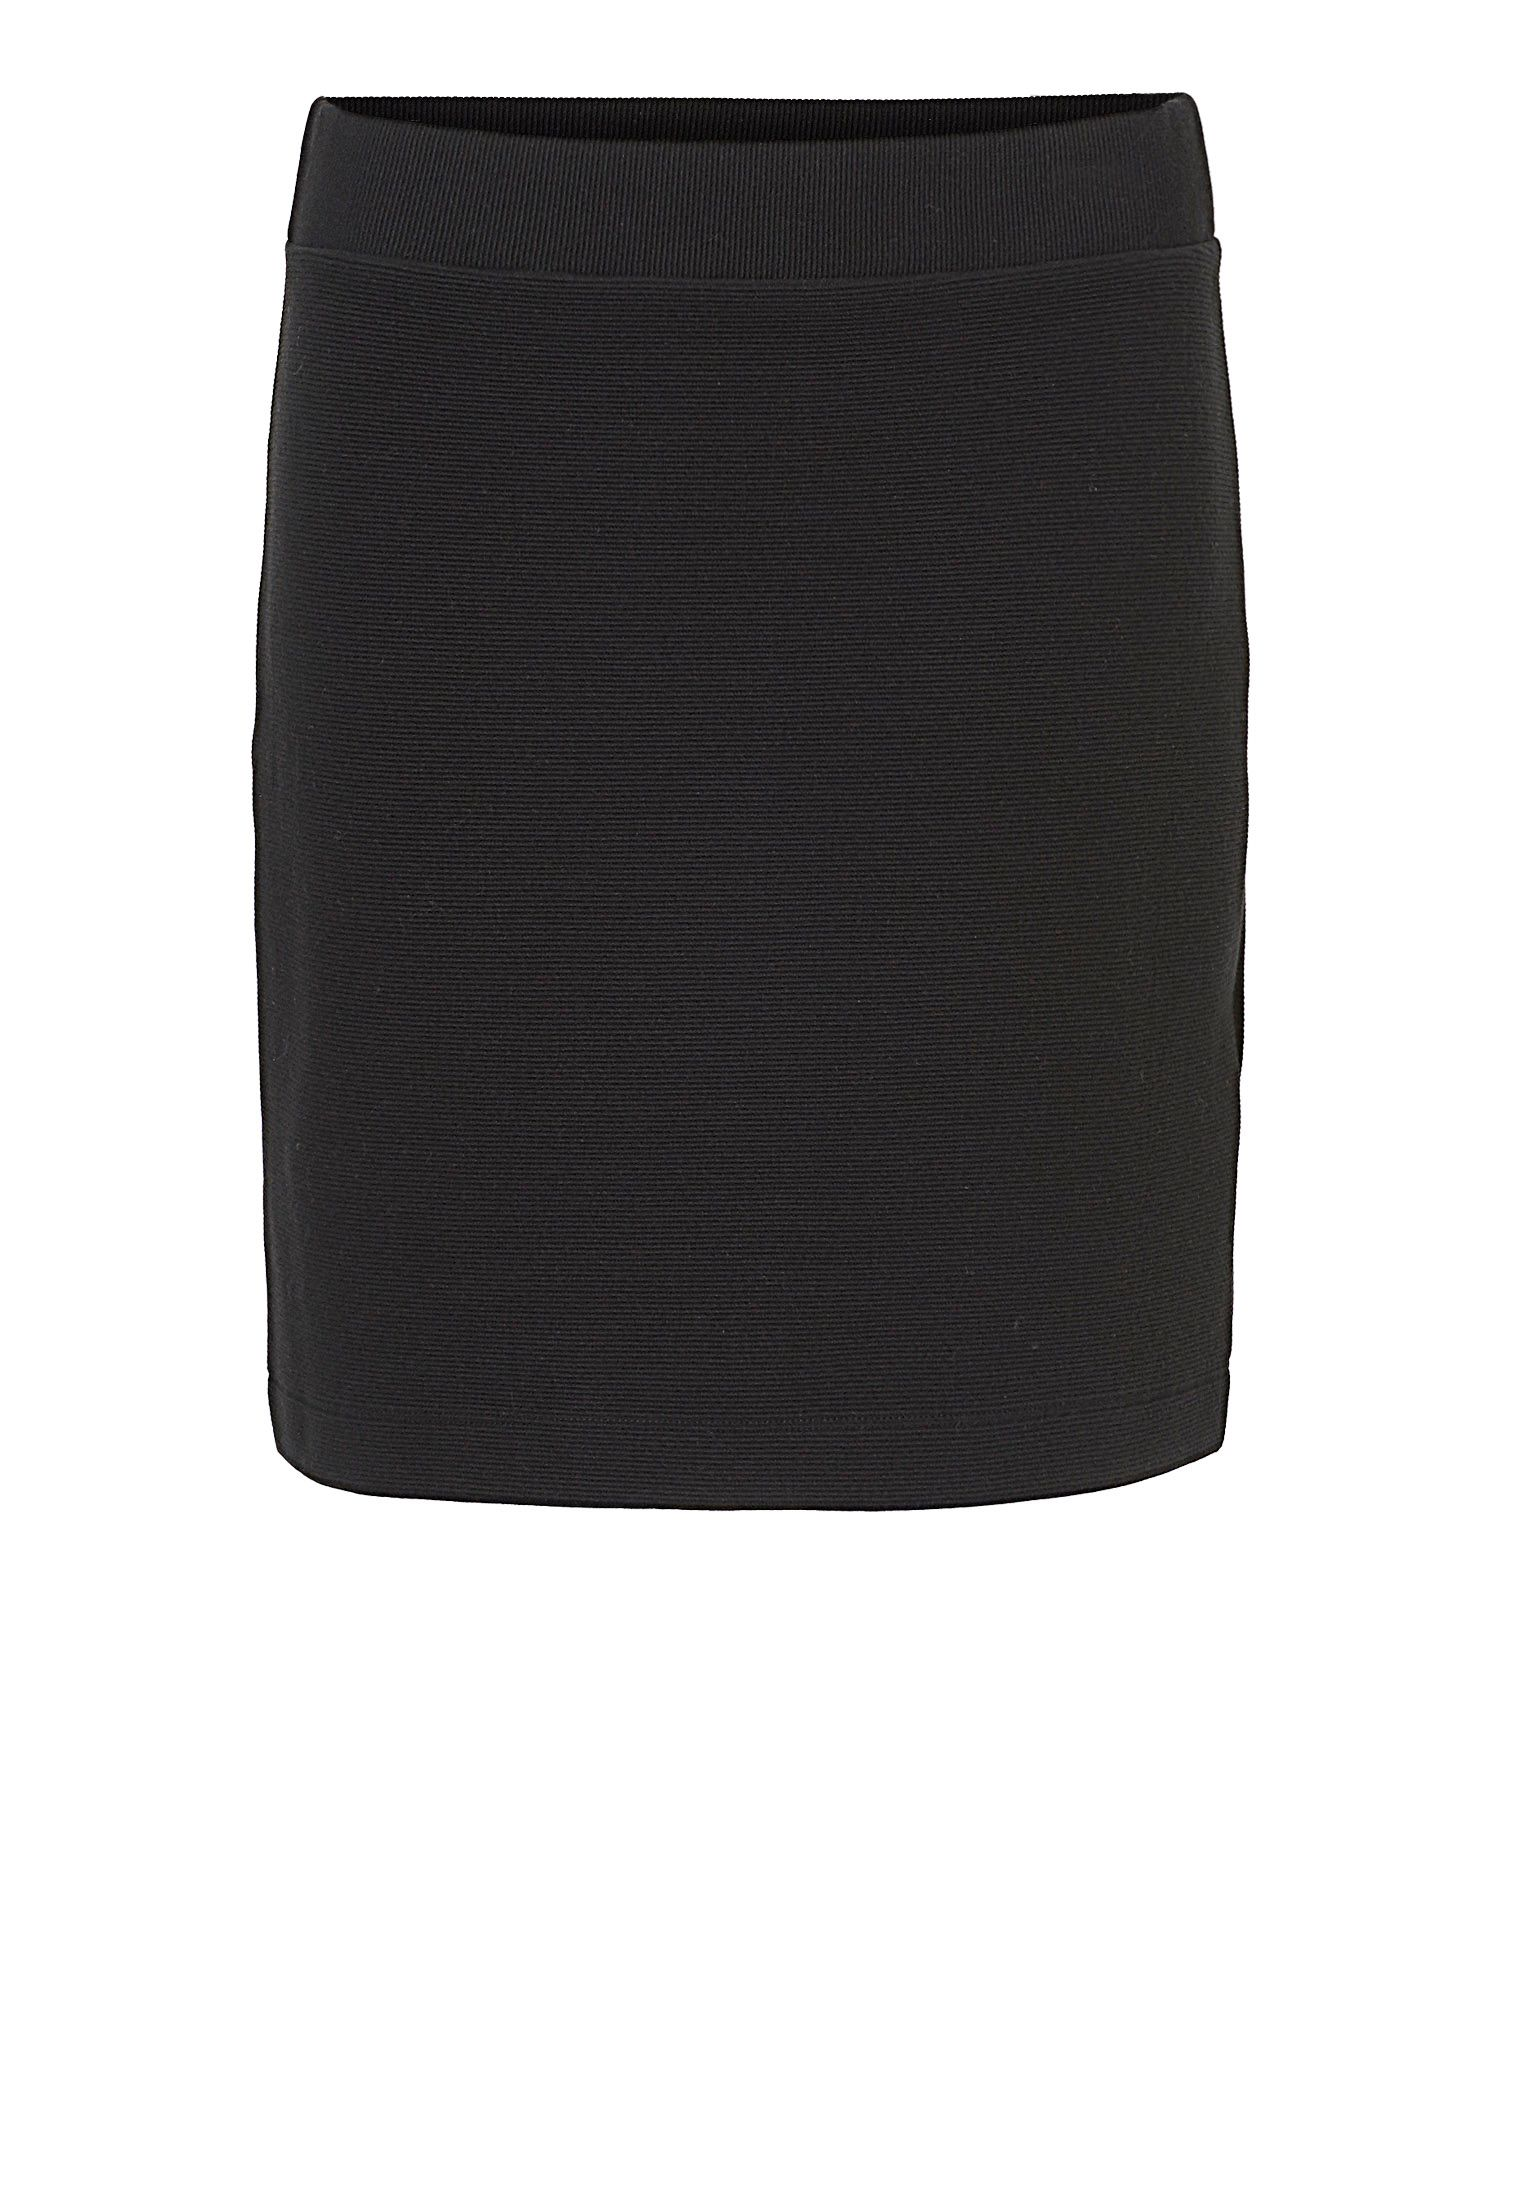 Betty & Co. Textured skirt, Black